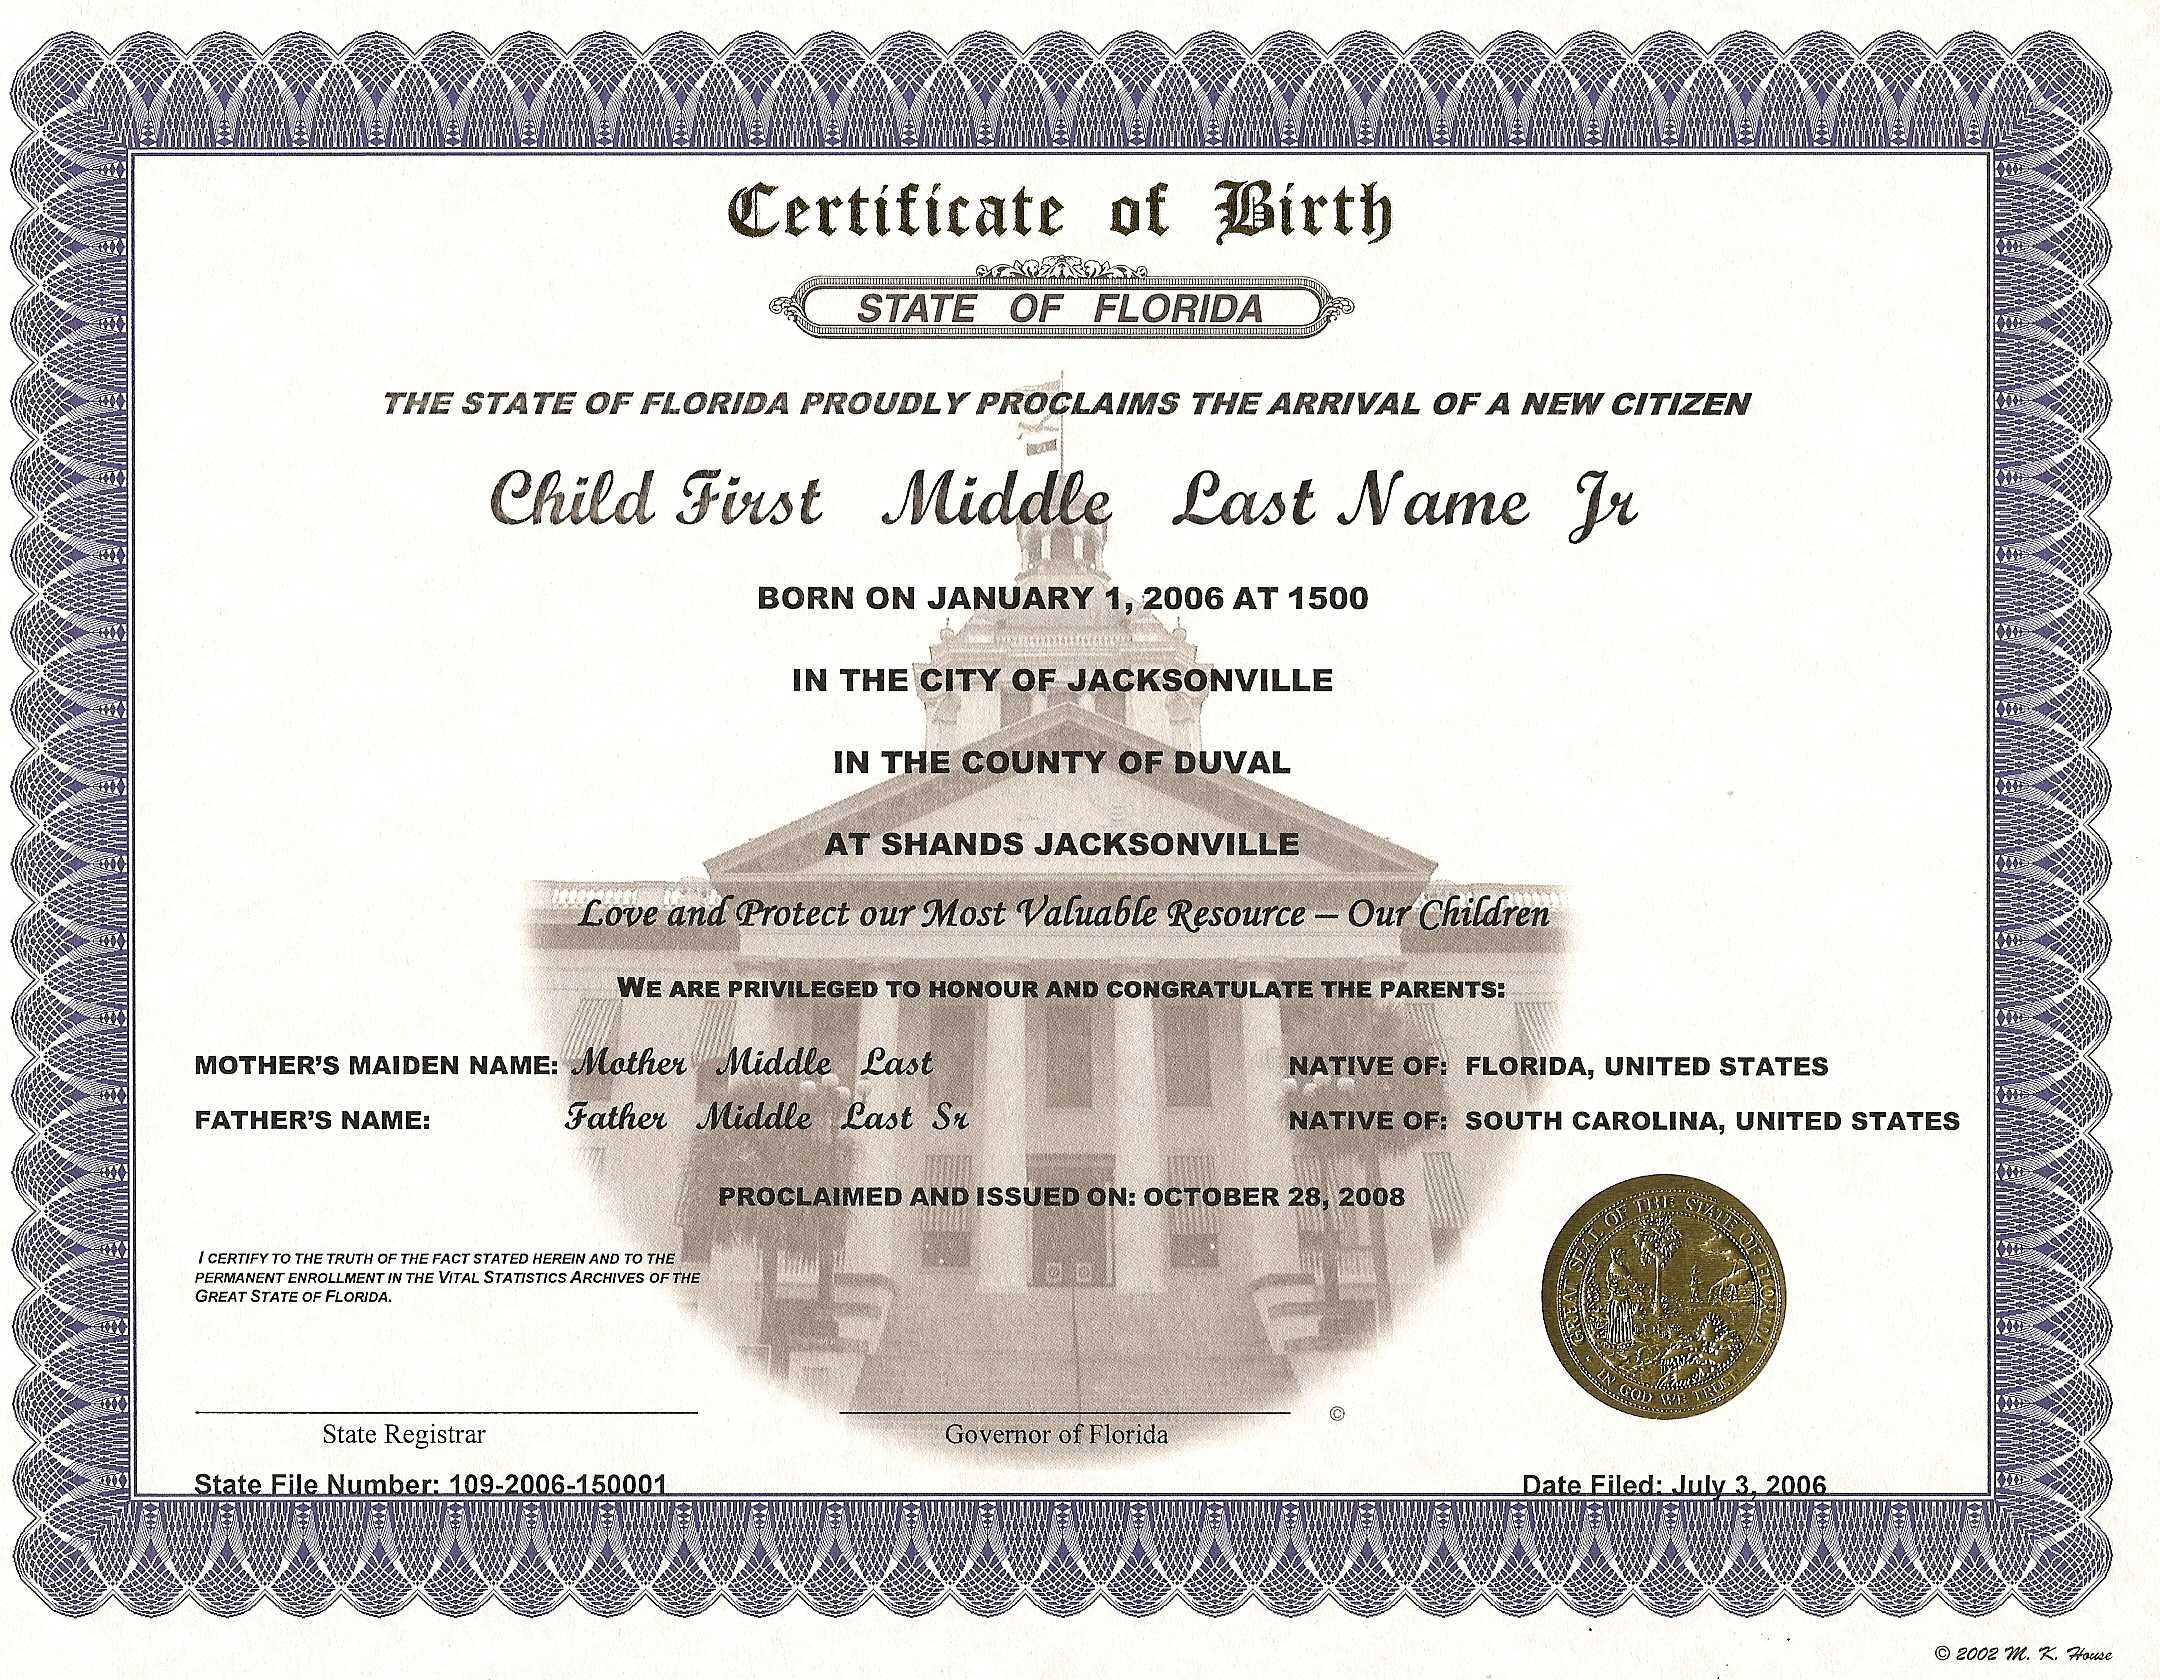 Commemorative Certificate Template ] - Keepsake Amp Regarding Commemorative Certificate Template